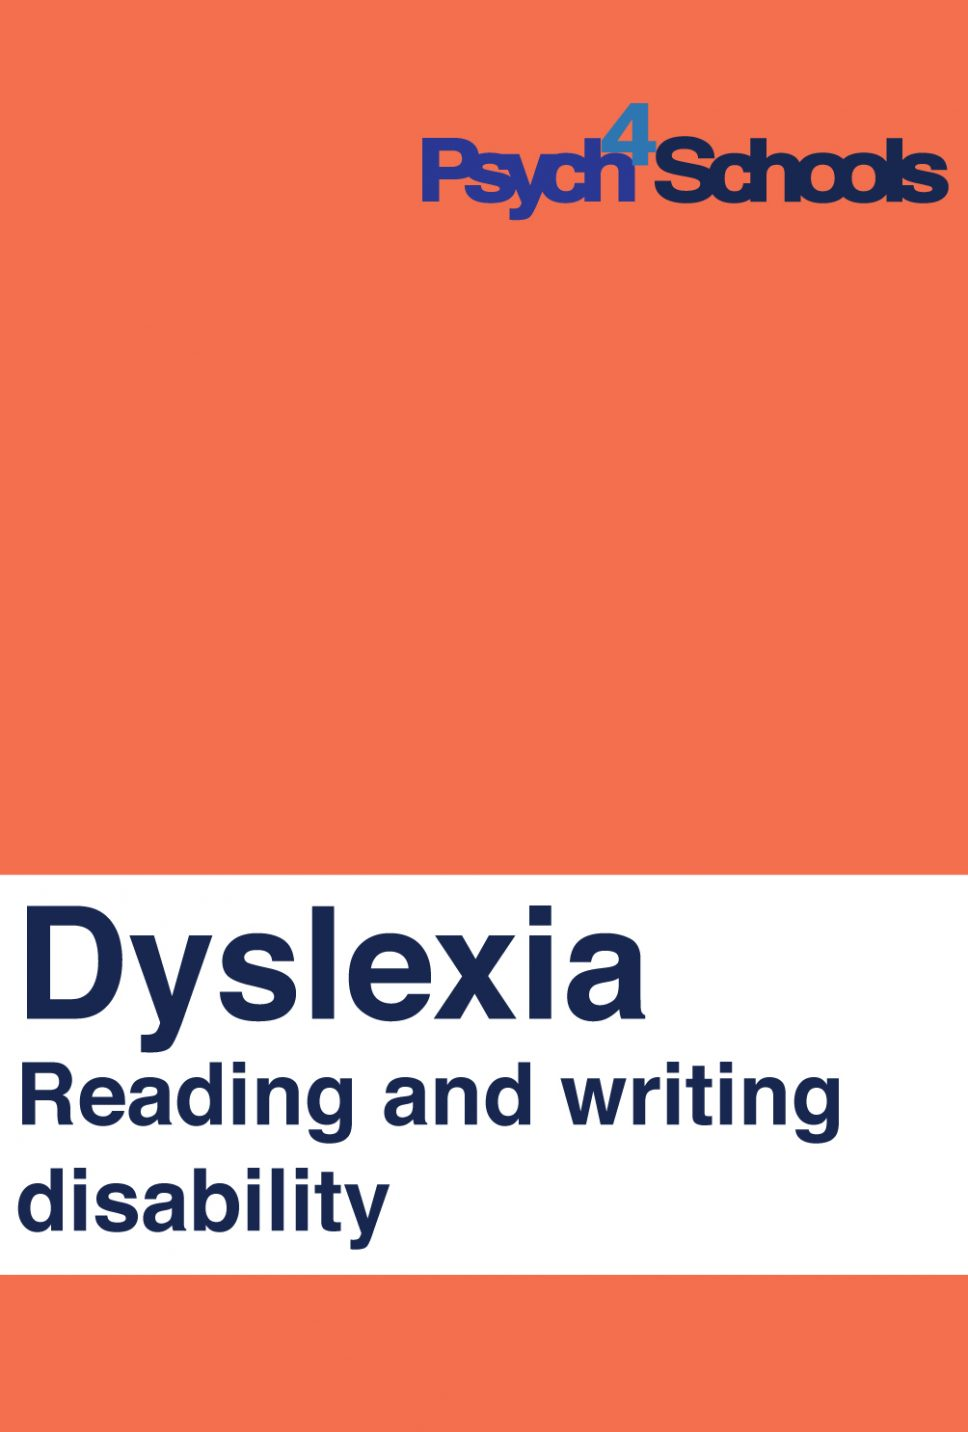 Dyslexia - Free resource - Psych4Schools